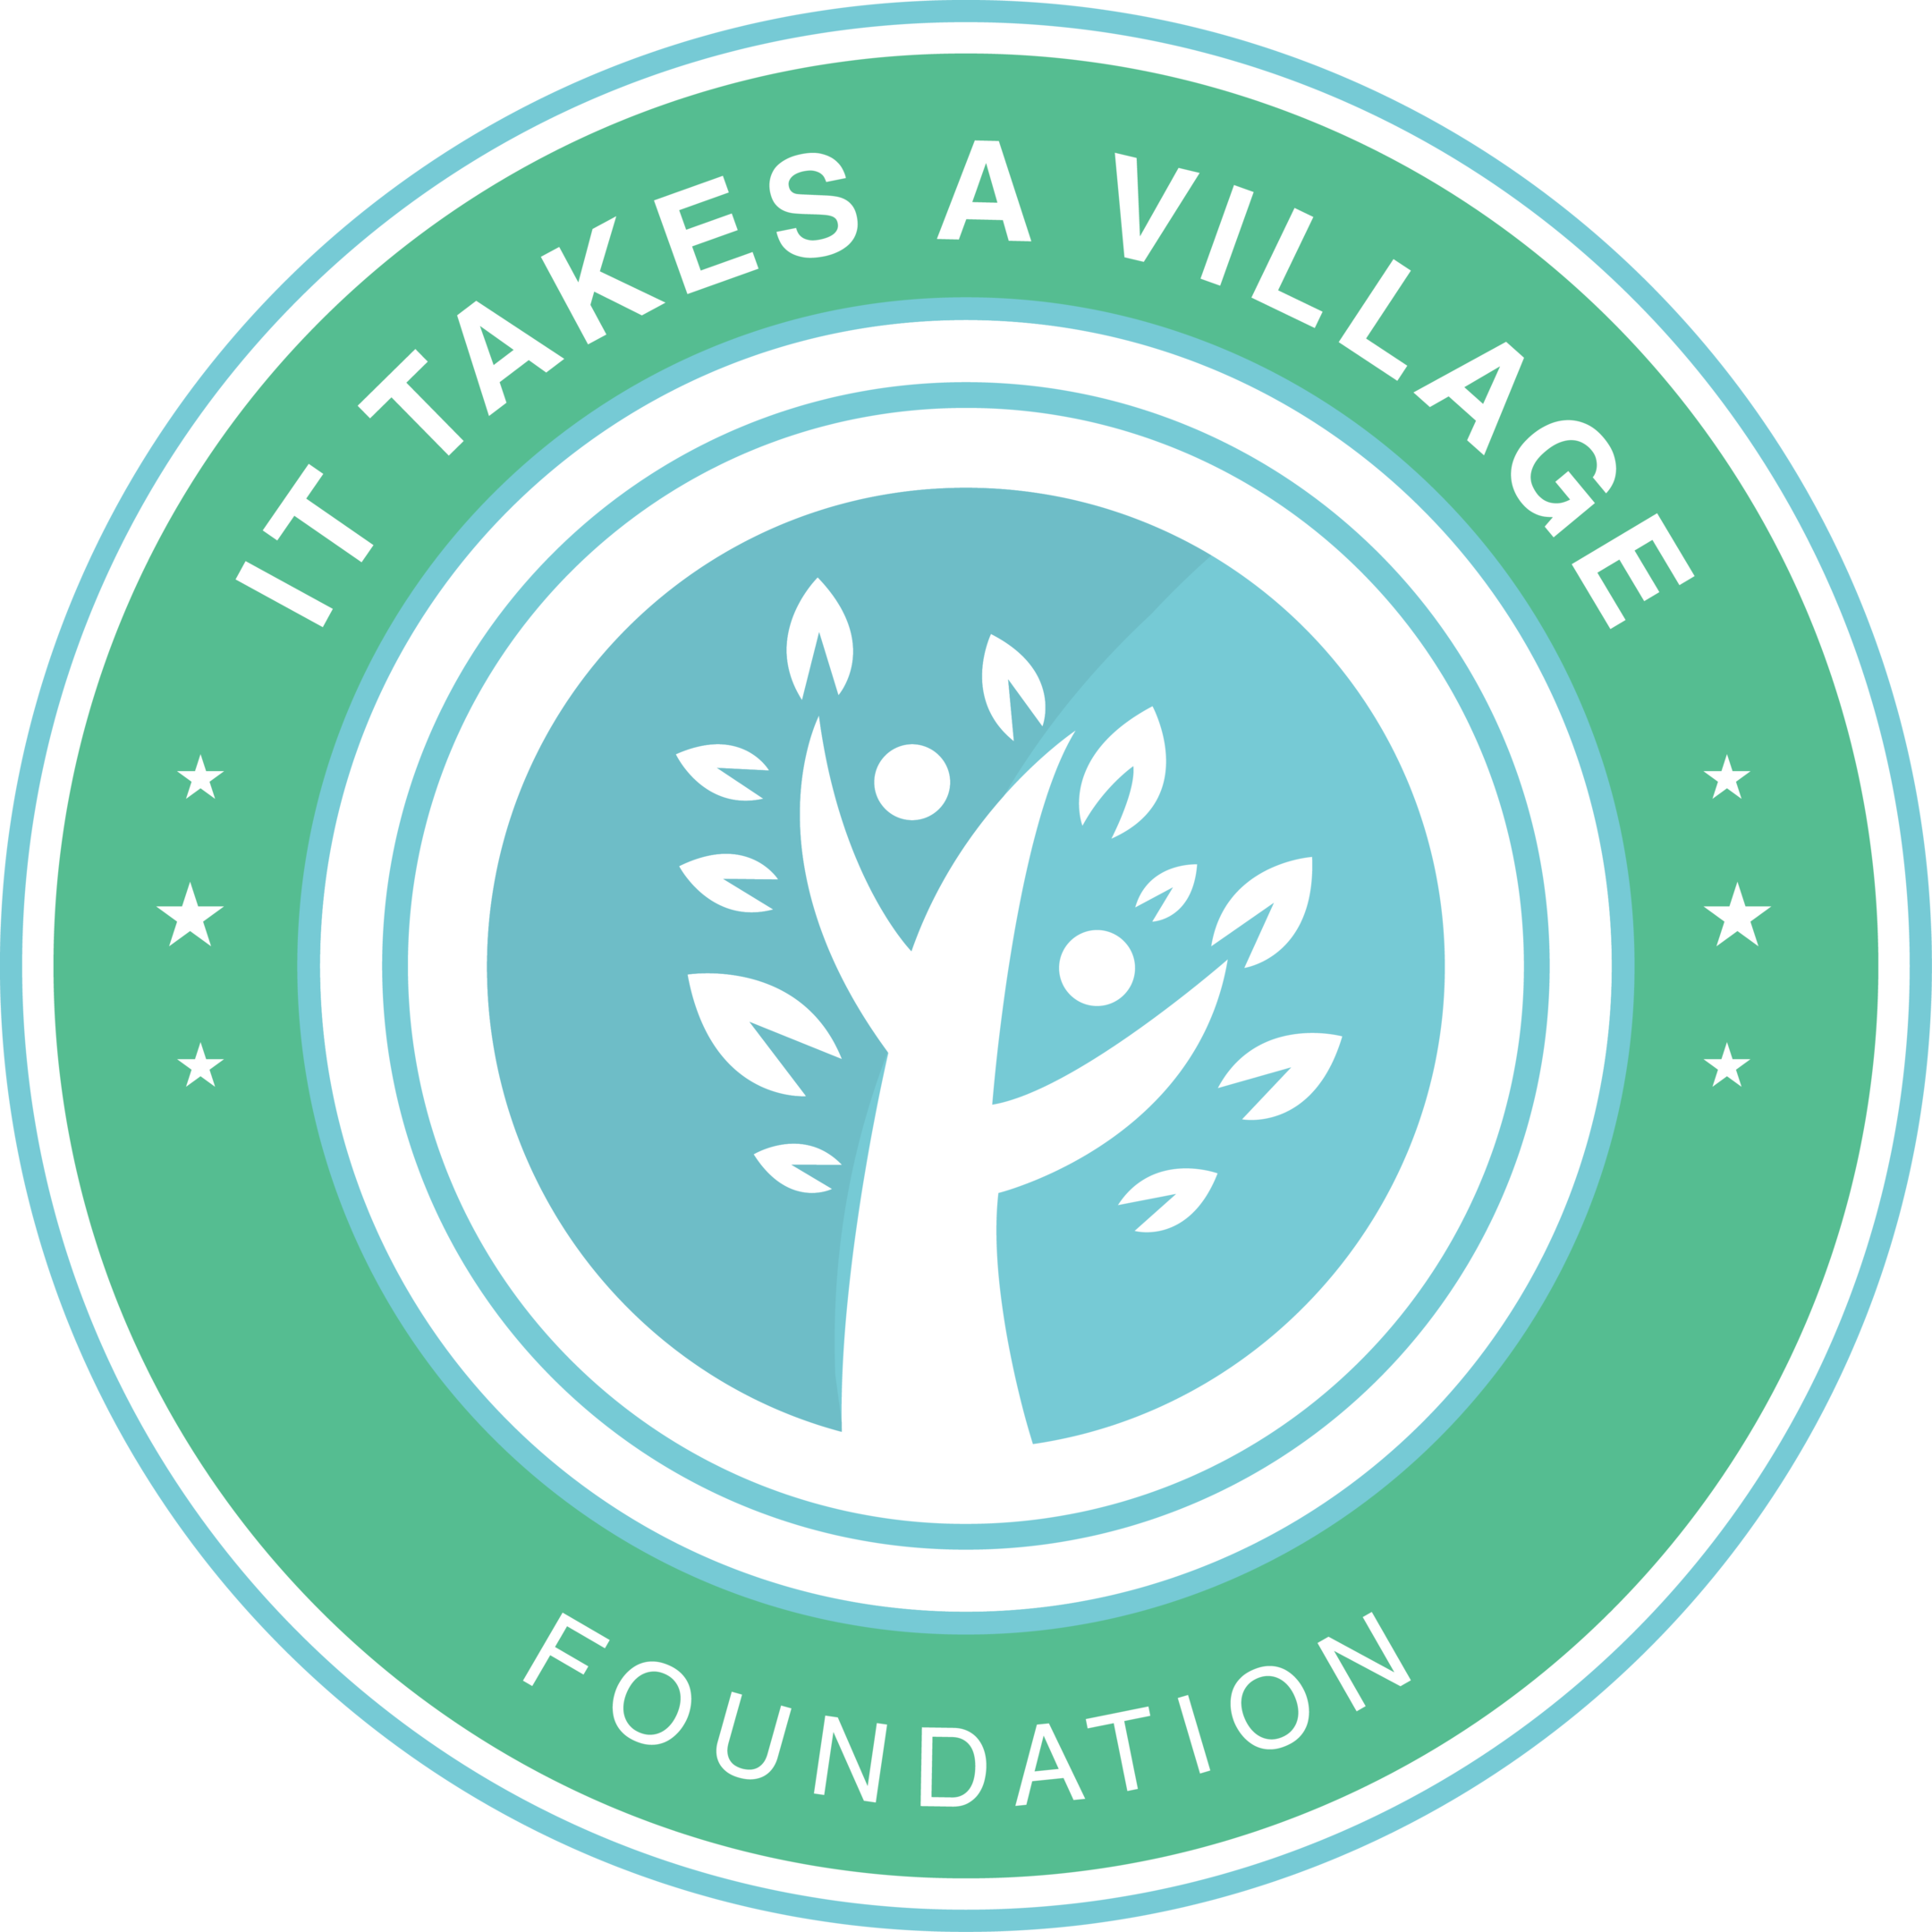 it-takes-a-village-foundation-inc_processed_e19ad6f29014a55ece74672f9e72d6eb157e69ff5d2d50b5706015b531c8d8ca_logo.png